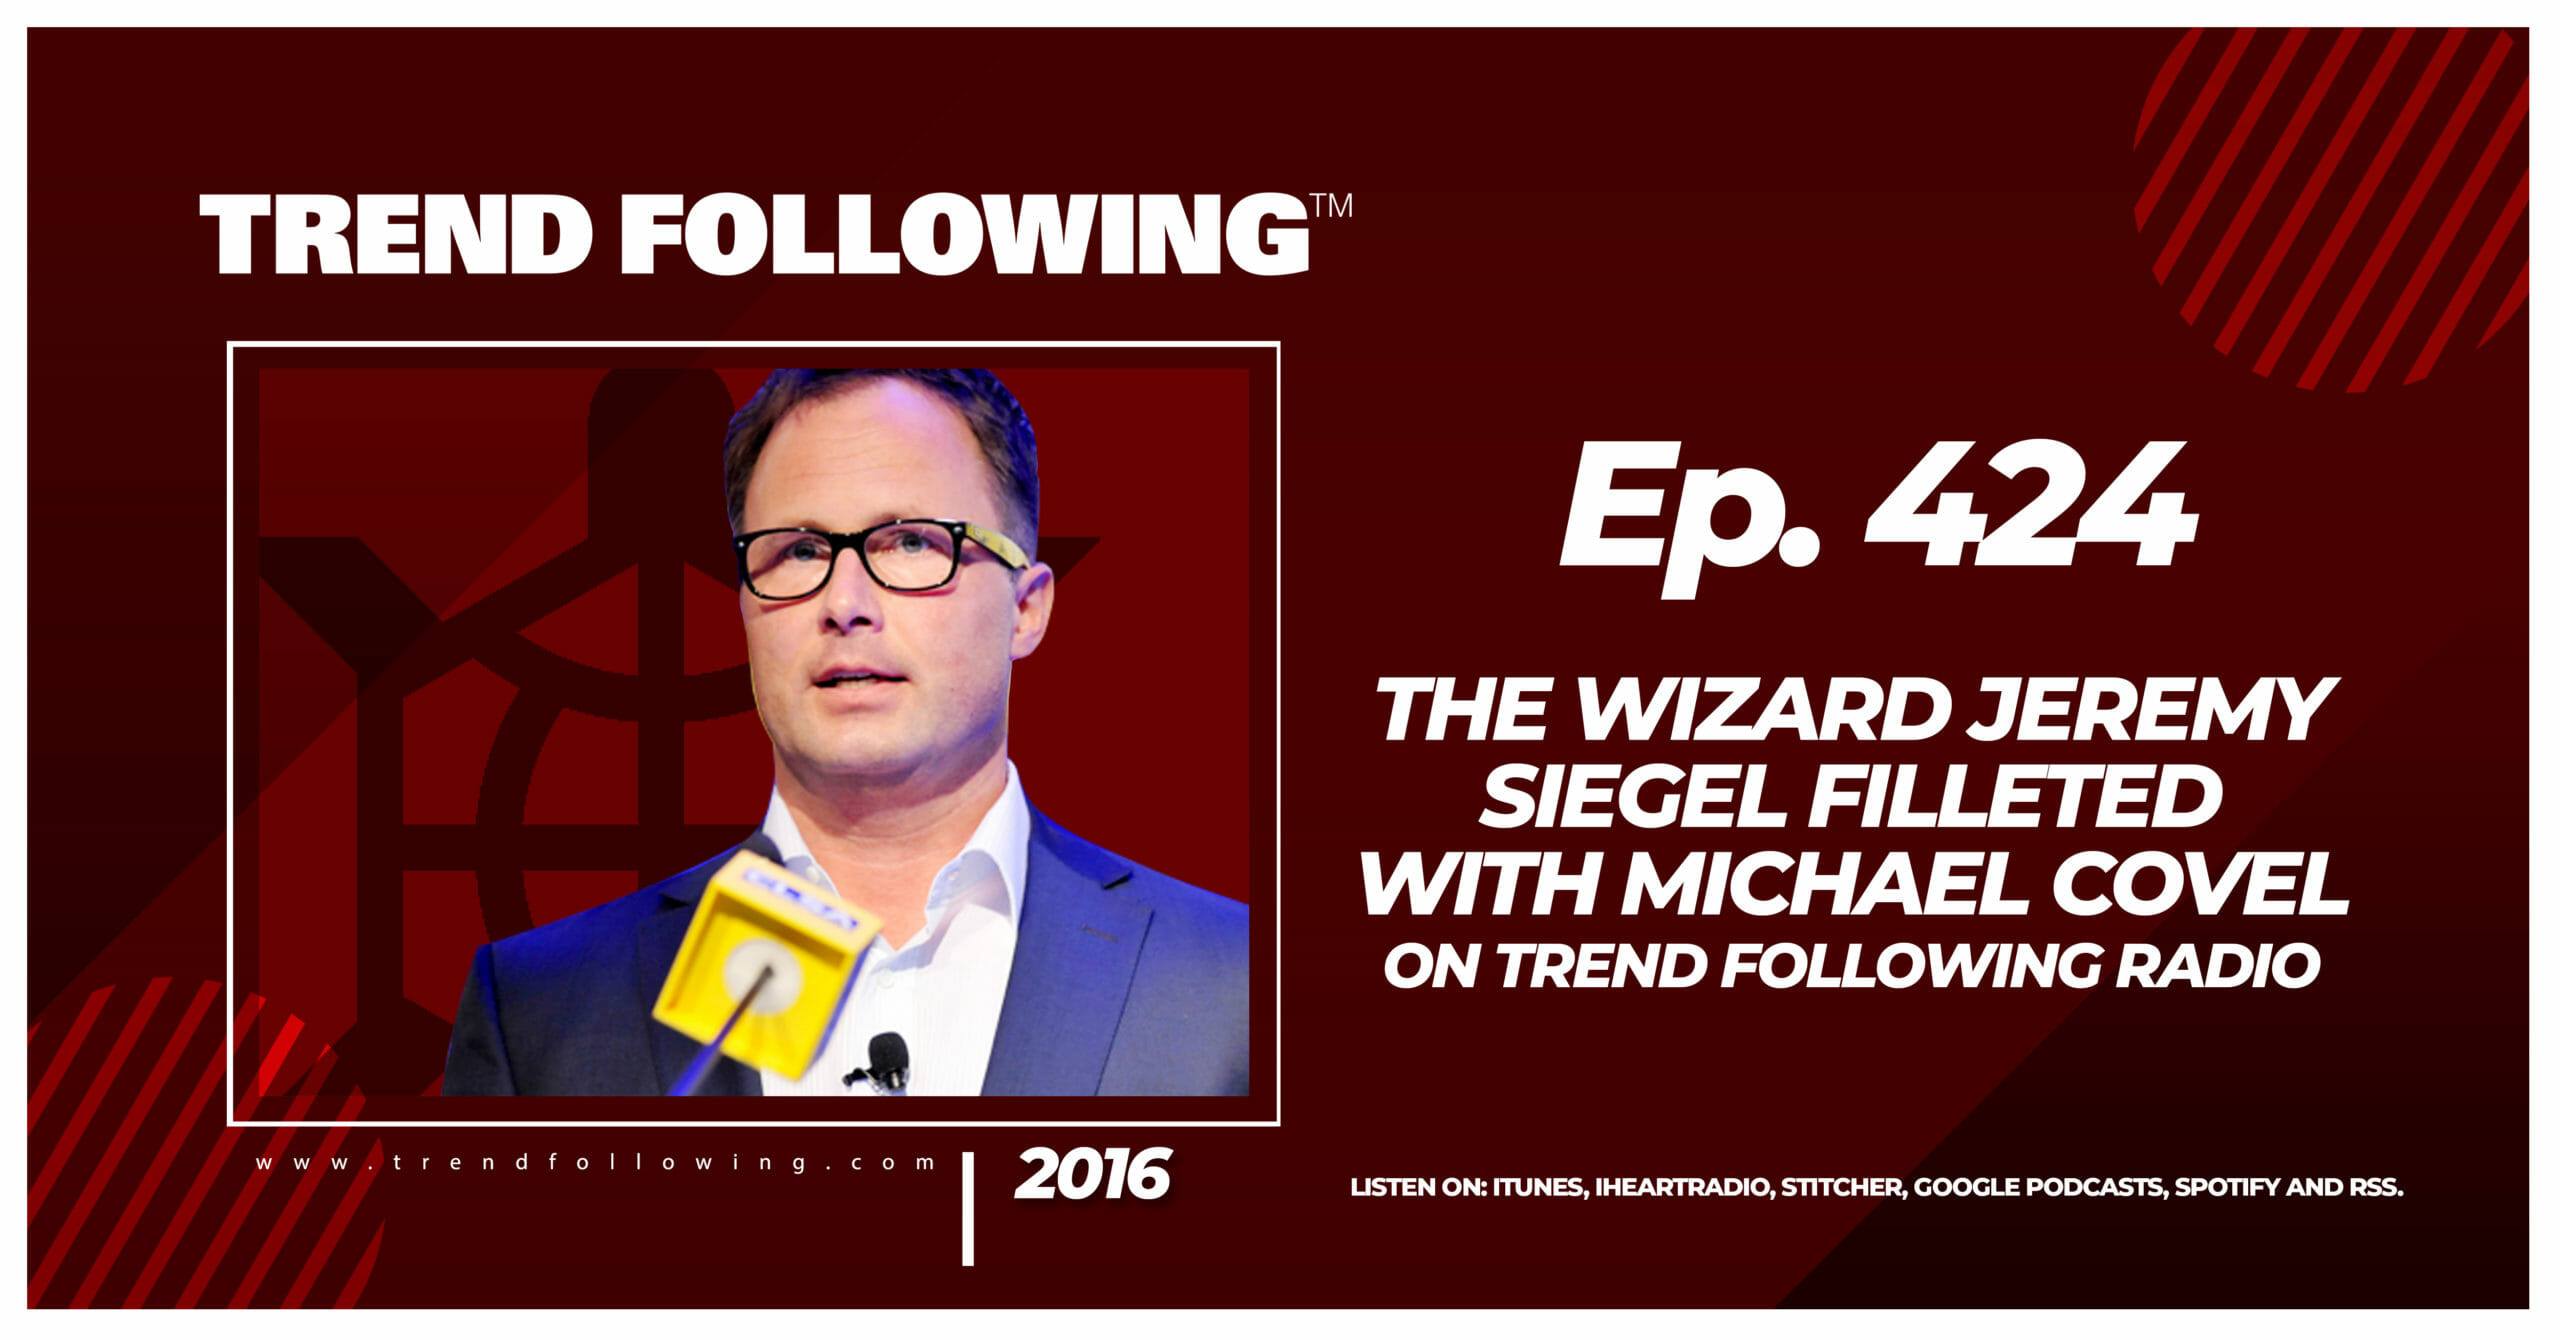 The Wizard Jeremy Siegel Filleted with Michael Covel on Trend Following Radio